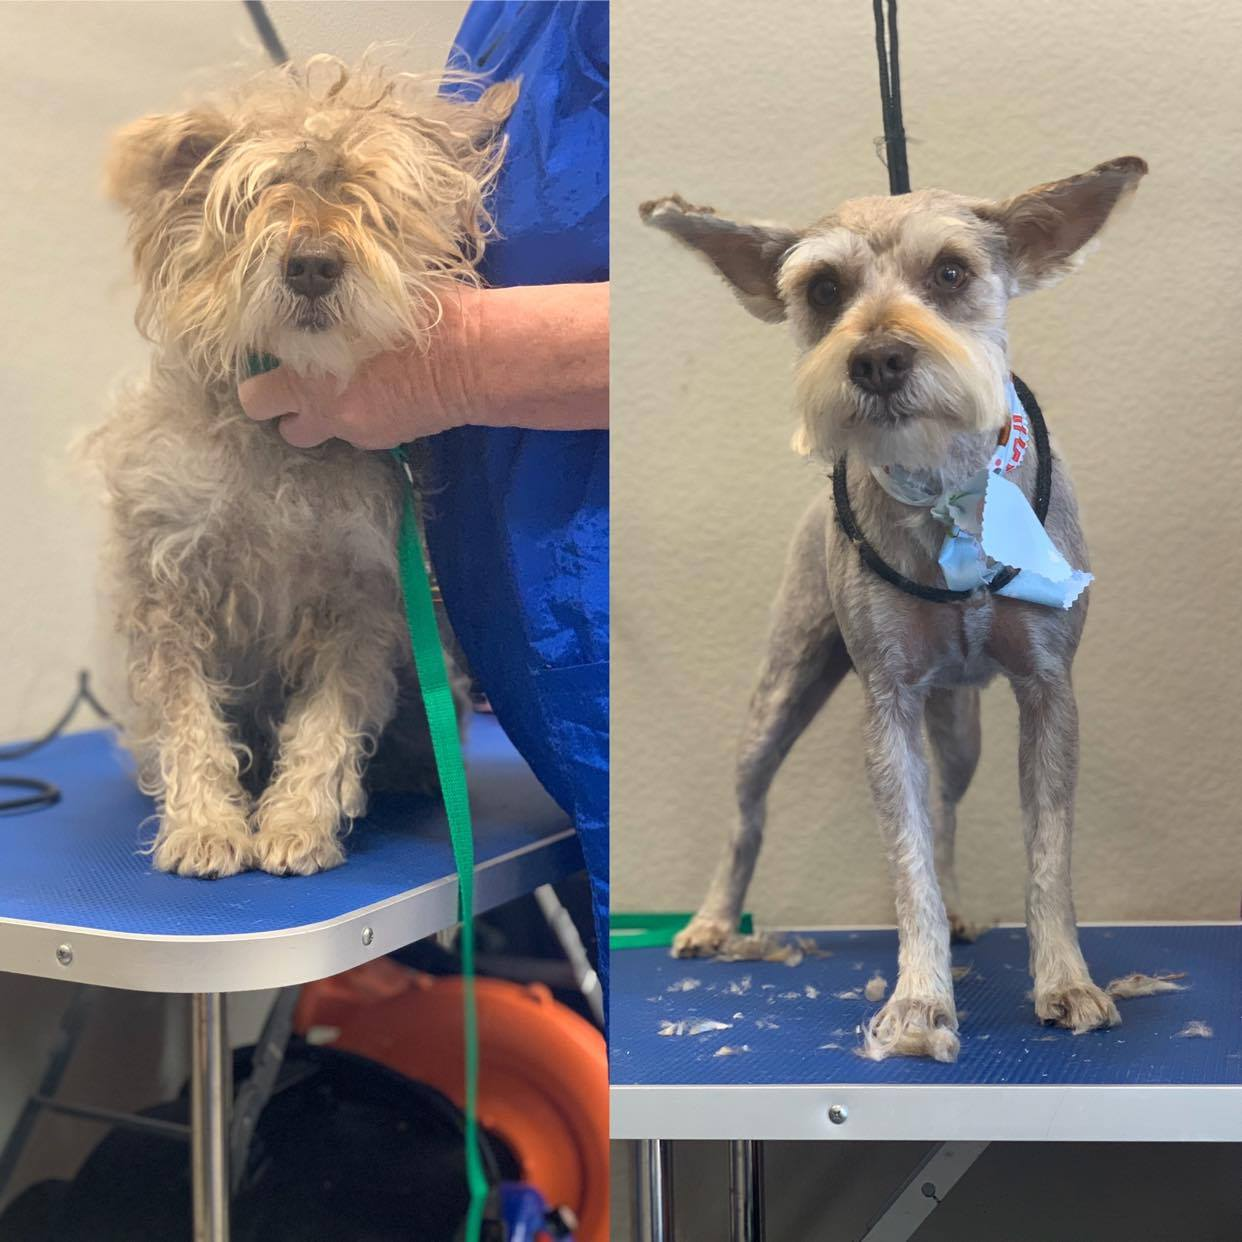 dog grooming - before / after